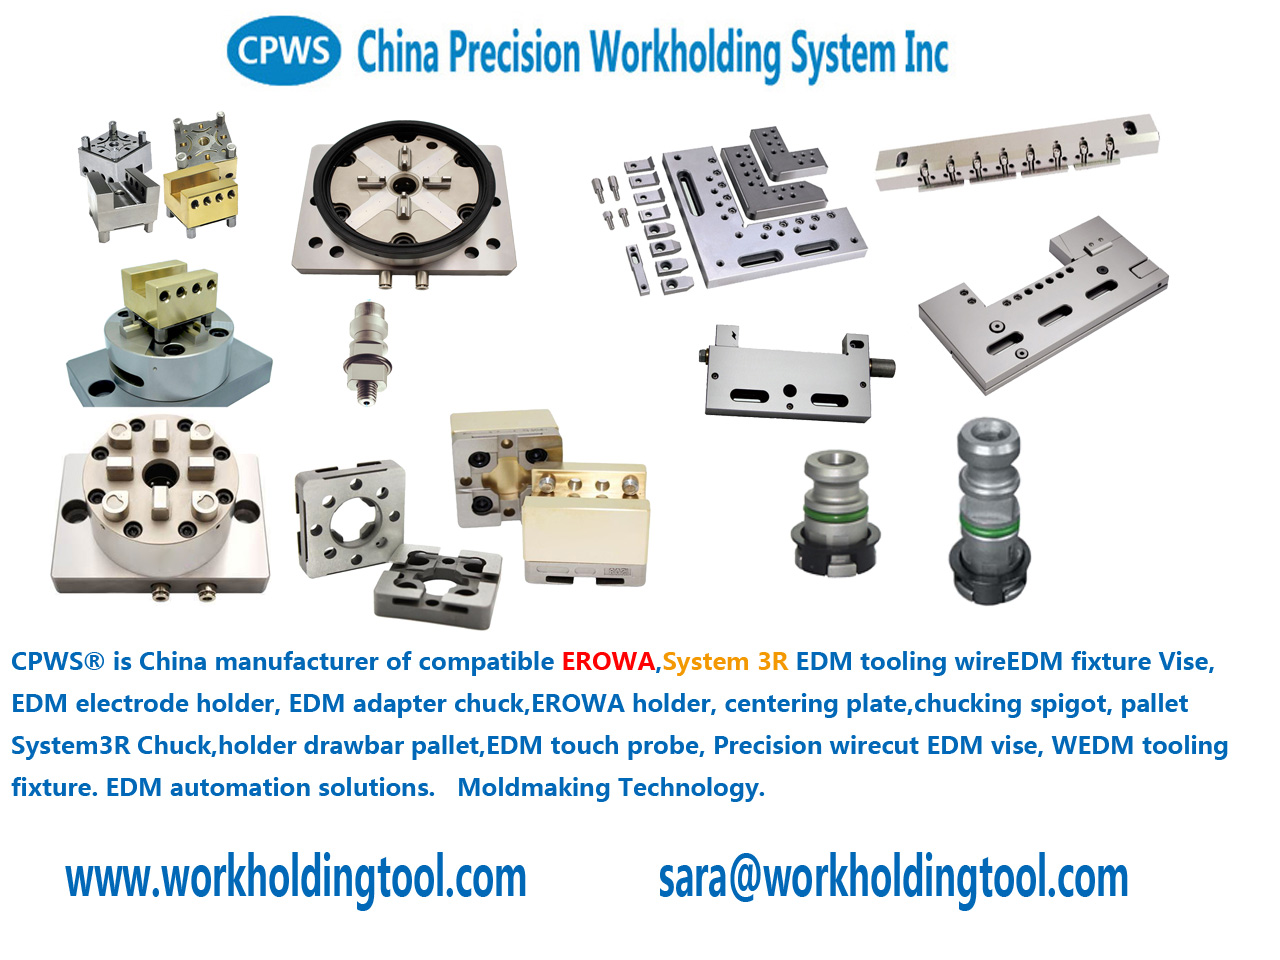 CPWS workholding